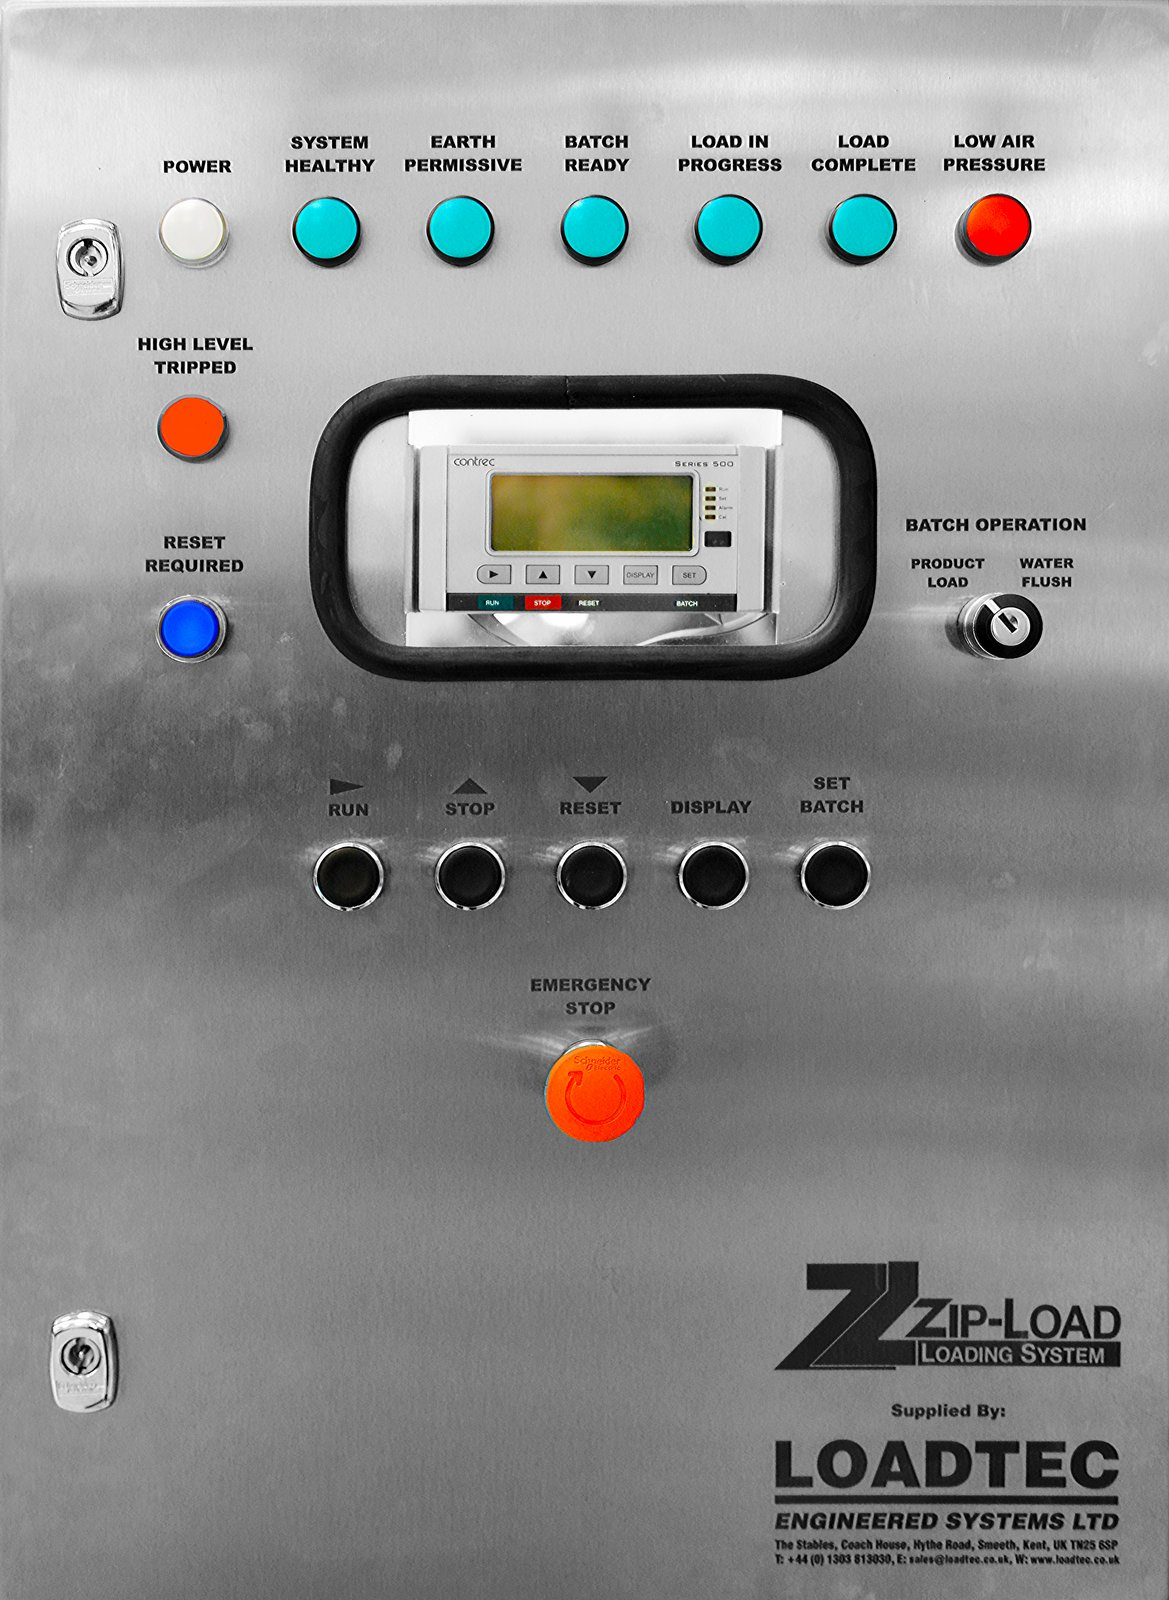 Control Panels - In Control Projects